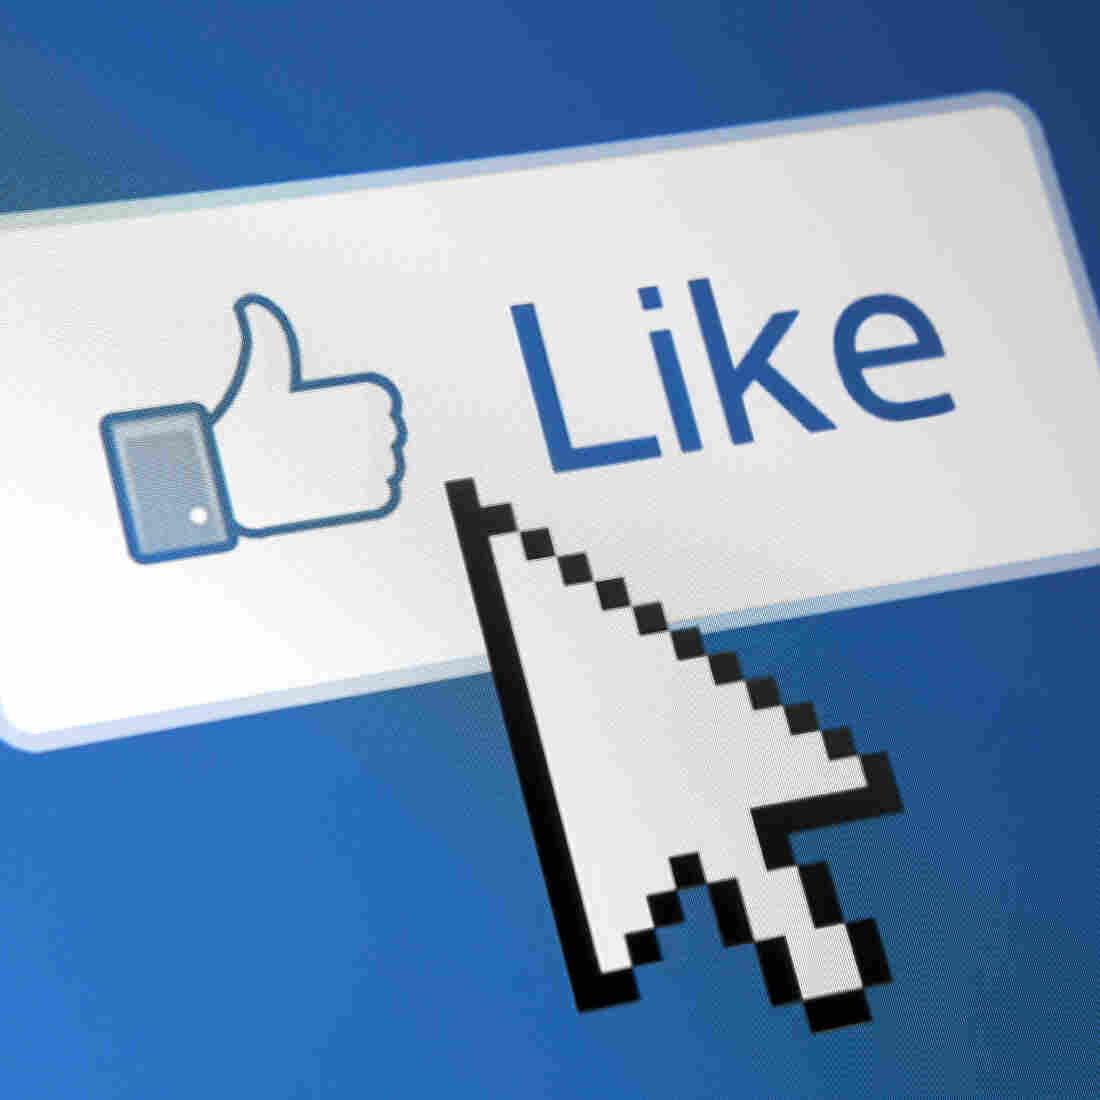 """By clicking """"Like"""" and commenting on Facebook posts, users signal the social network's algorithm that they care about something. That in turn helps influence what they see later. Algorithms like that happen all over the web — and the programs can reflect human biases."""